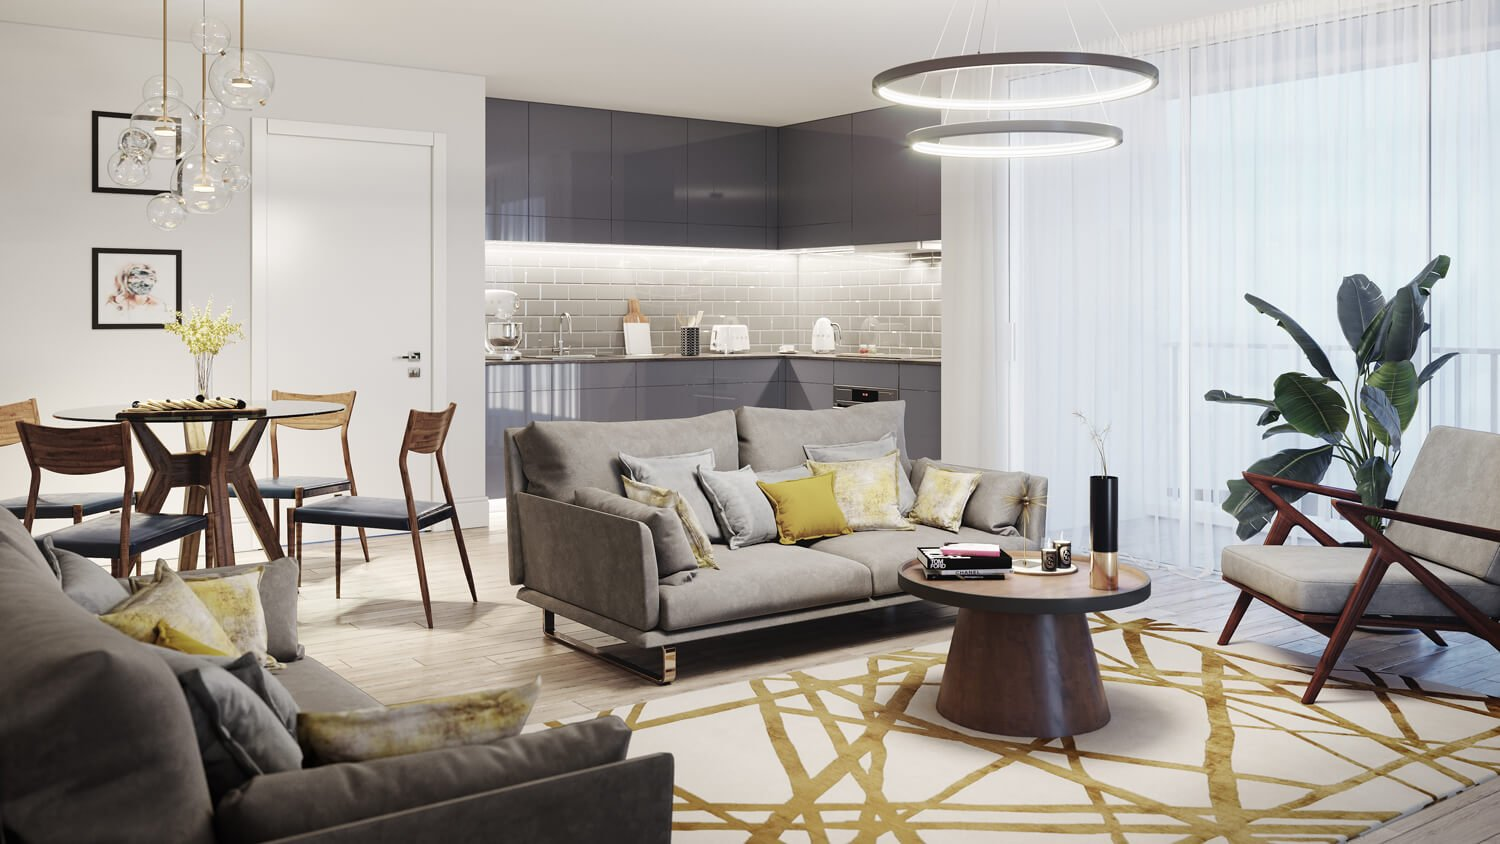 Urban CGI of Derwent Street high rise development, showing the interior of the lounge in a modern, cool style with lemon accents.